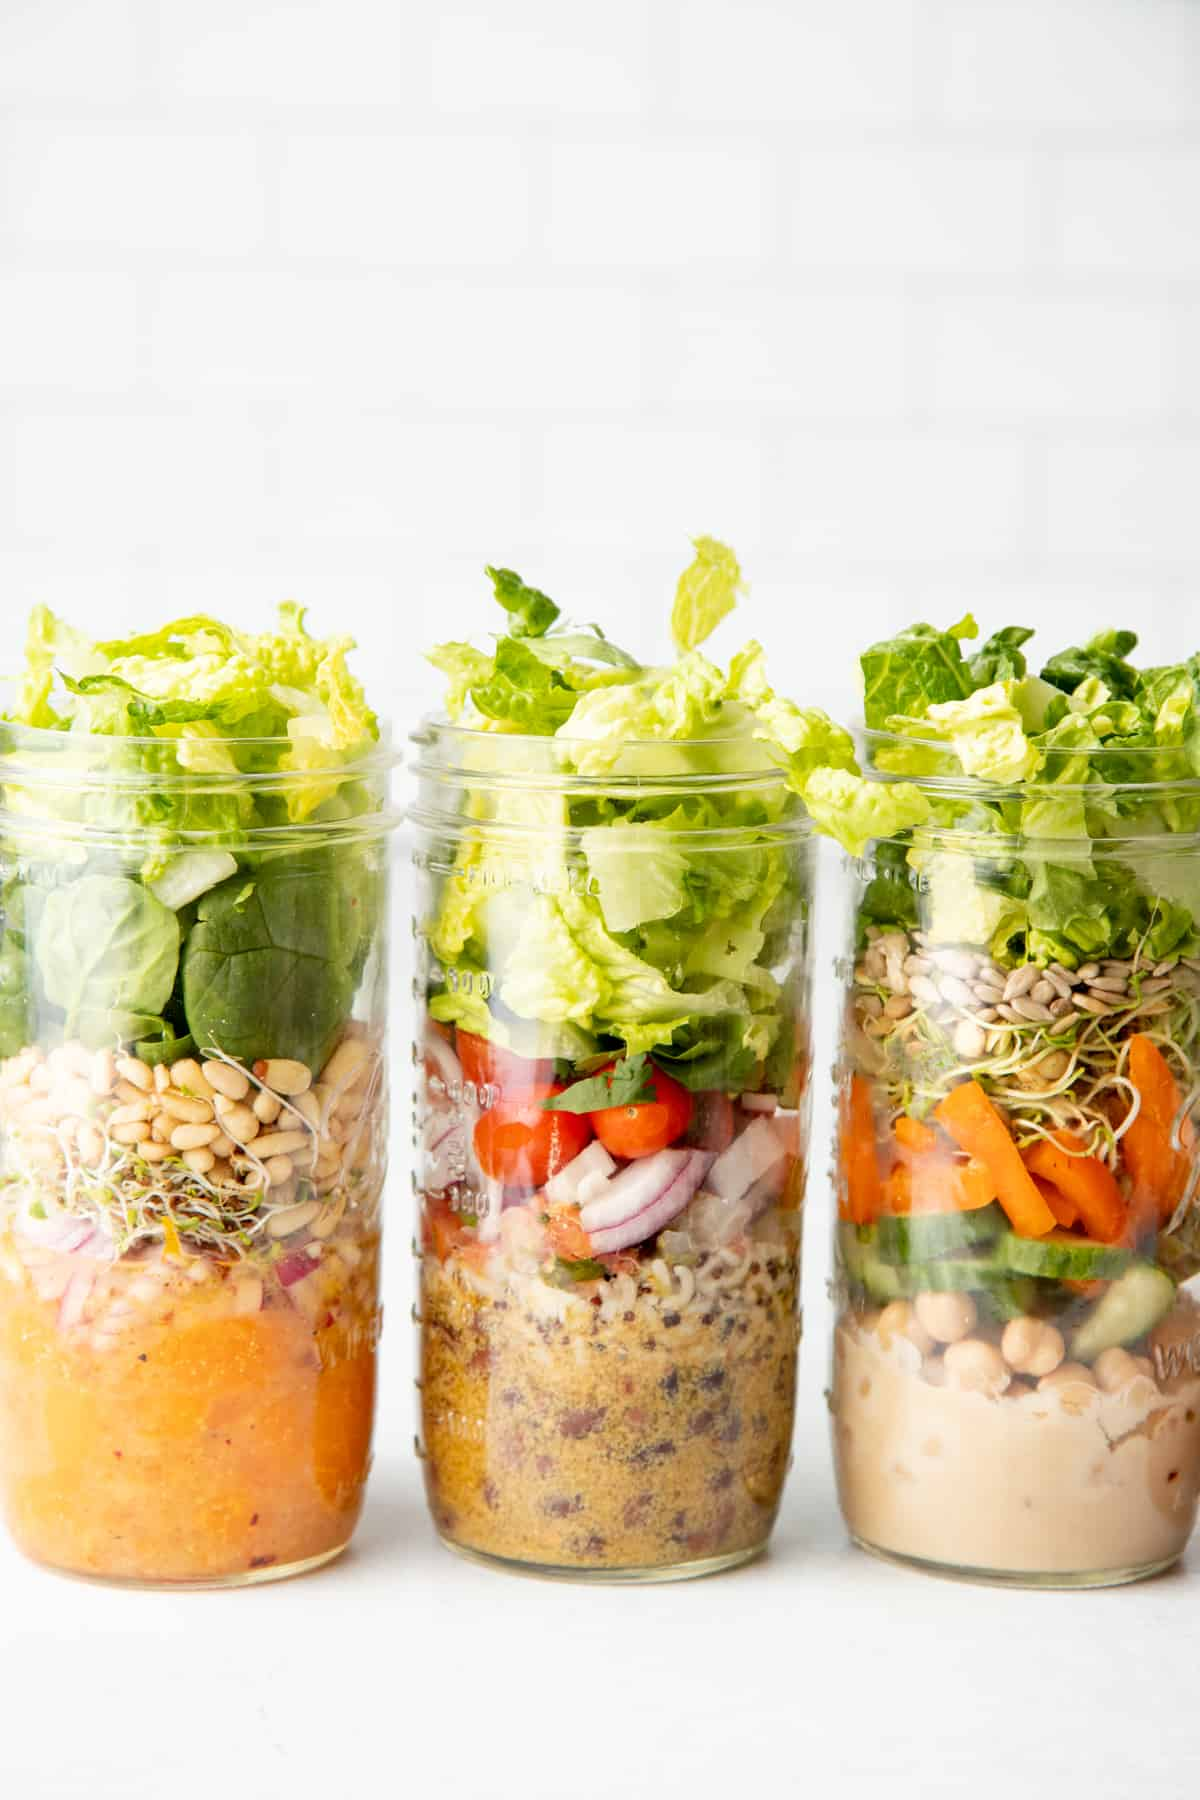 Three tall mason jars sit side-by-side in front of a white wall. Jars are layered with salad ingredients.